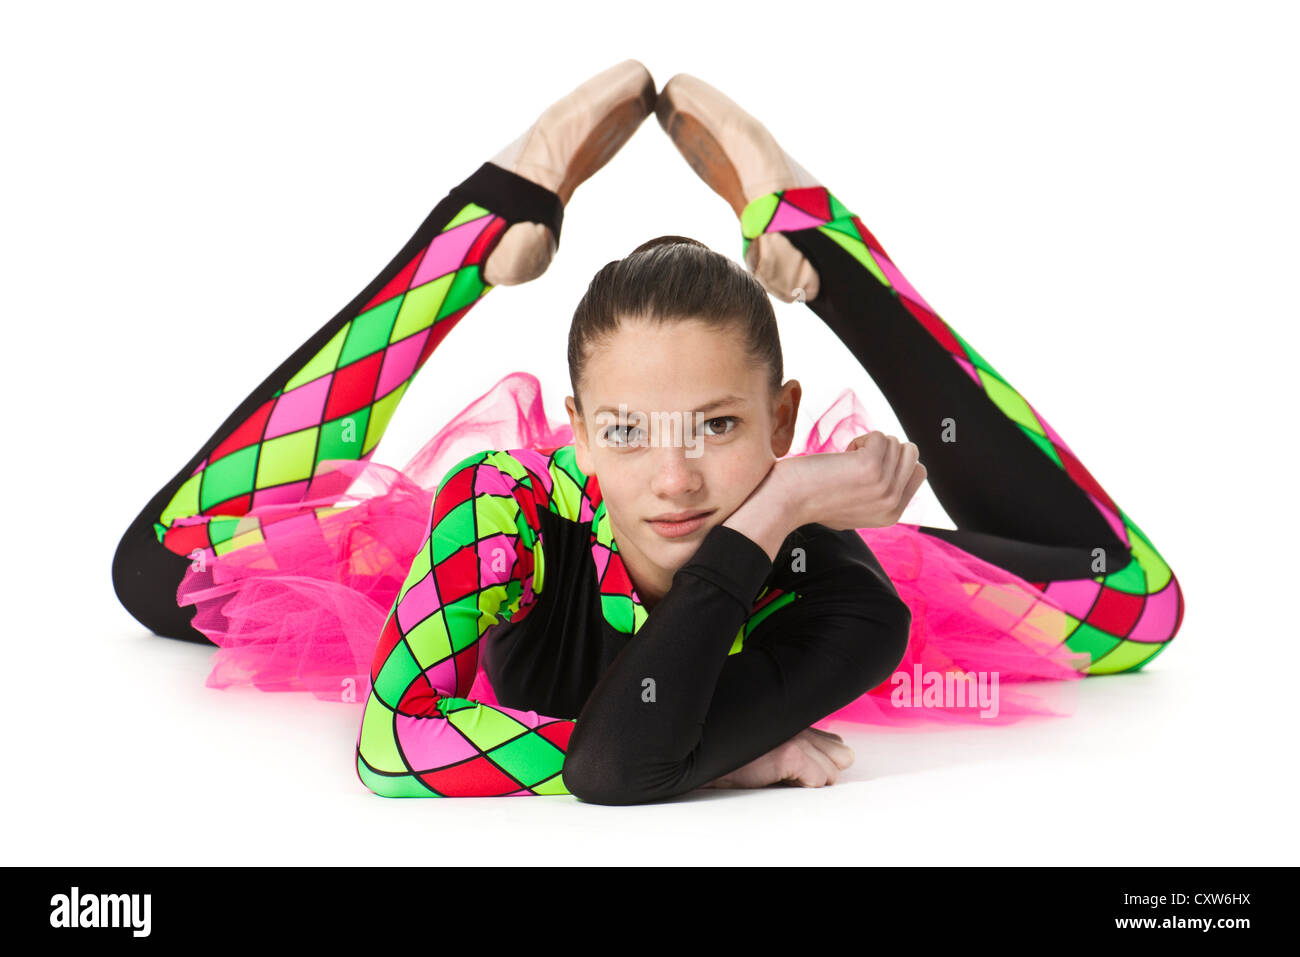 Teenage ballerina in modern multi-coloured harlequin-pattern ballet costume with pink netting - Stock Image